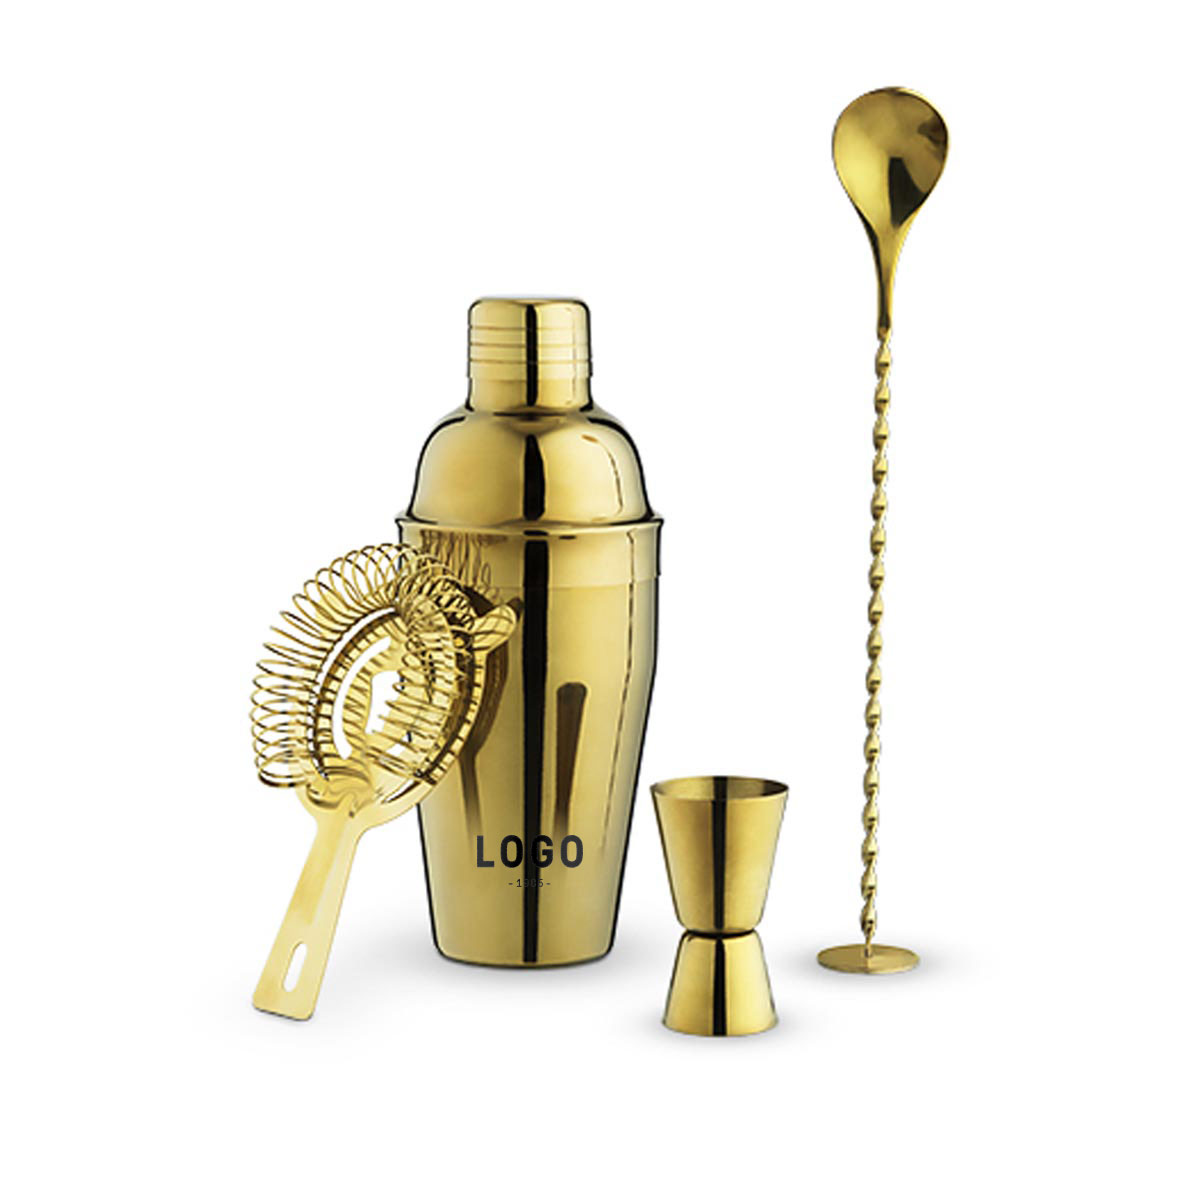 130234 gold shaker set one color imprint on jigger or shaker